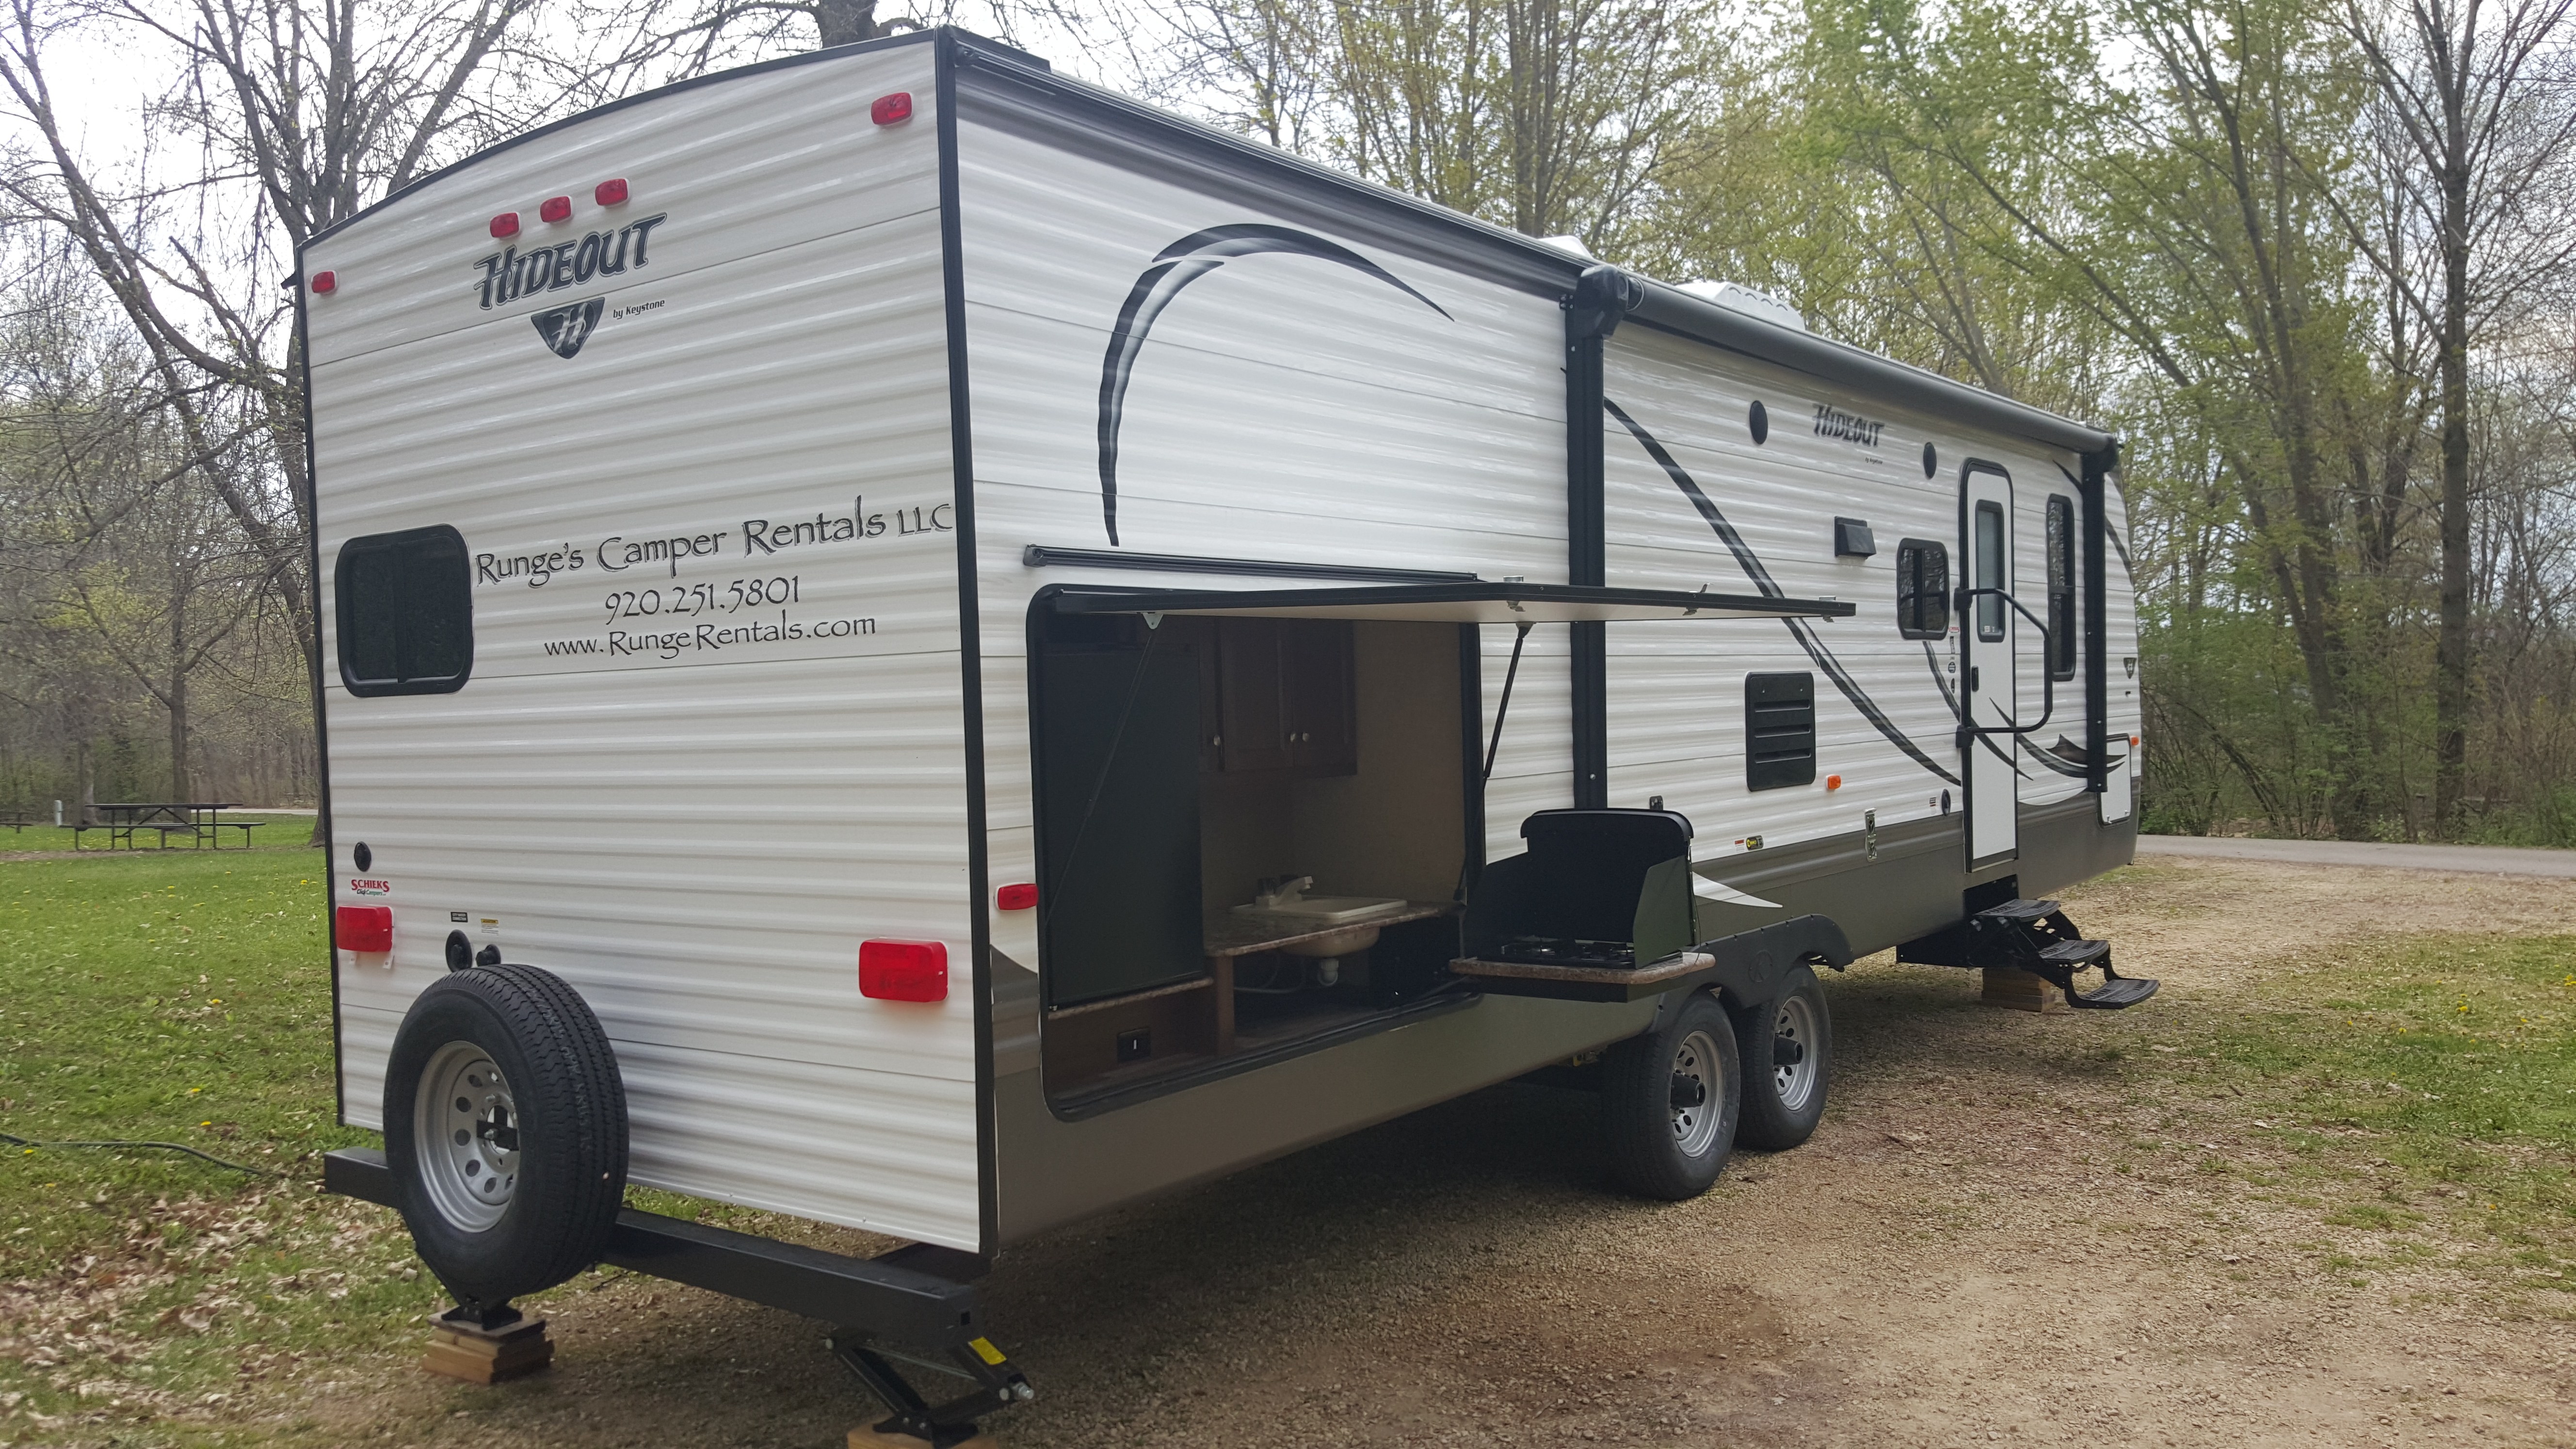 Camper Trailer Kitchen Runges Camper Rentals Llc Rent A Camper Camper Rentals